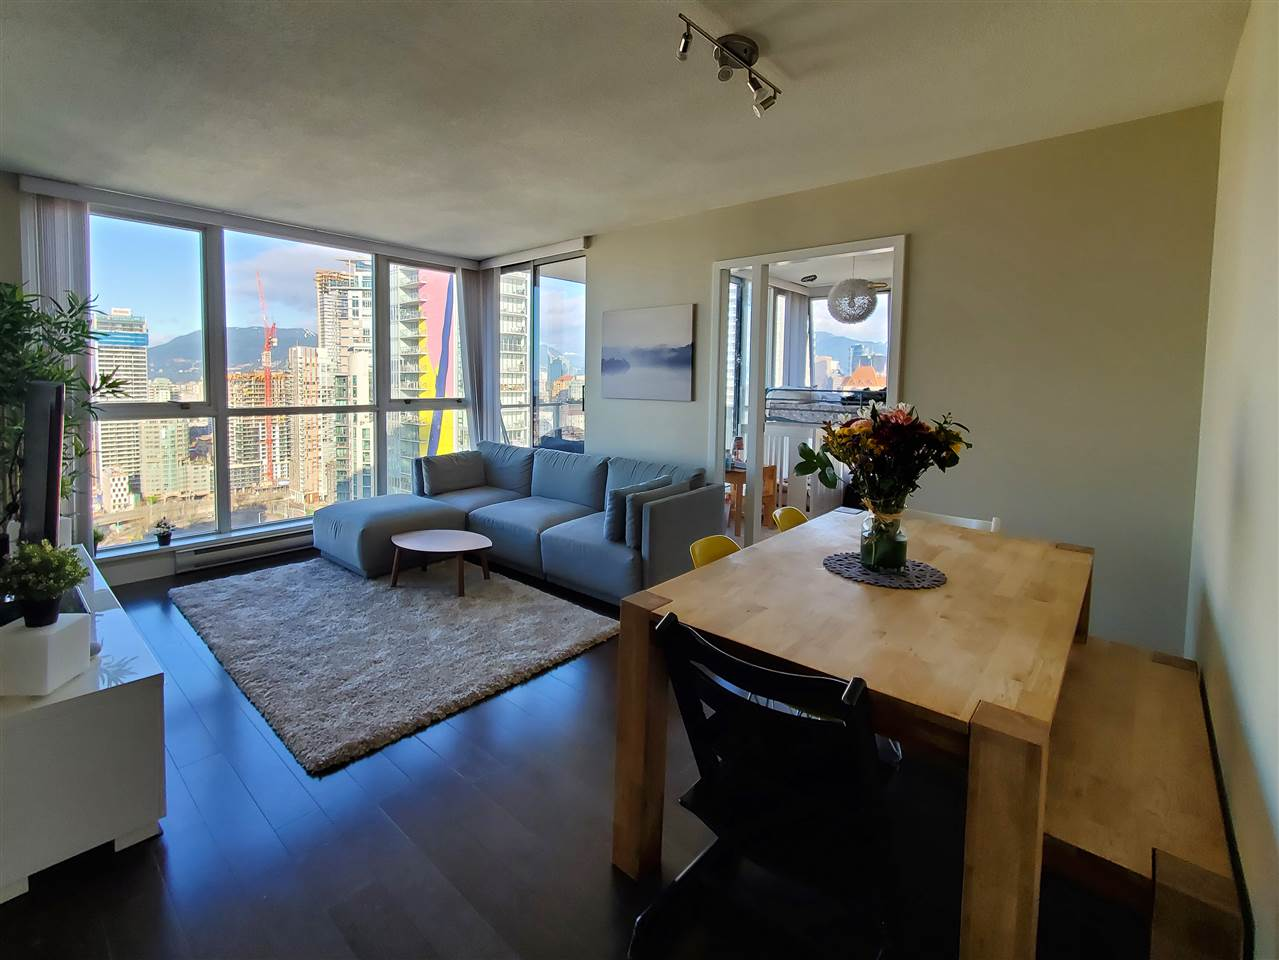 4006 1408 STRATHMORE MEWS - Yaletown Apartment/Condo for sale, 1 Bedroom (R2528590) - #3